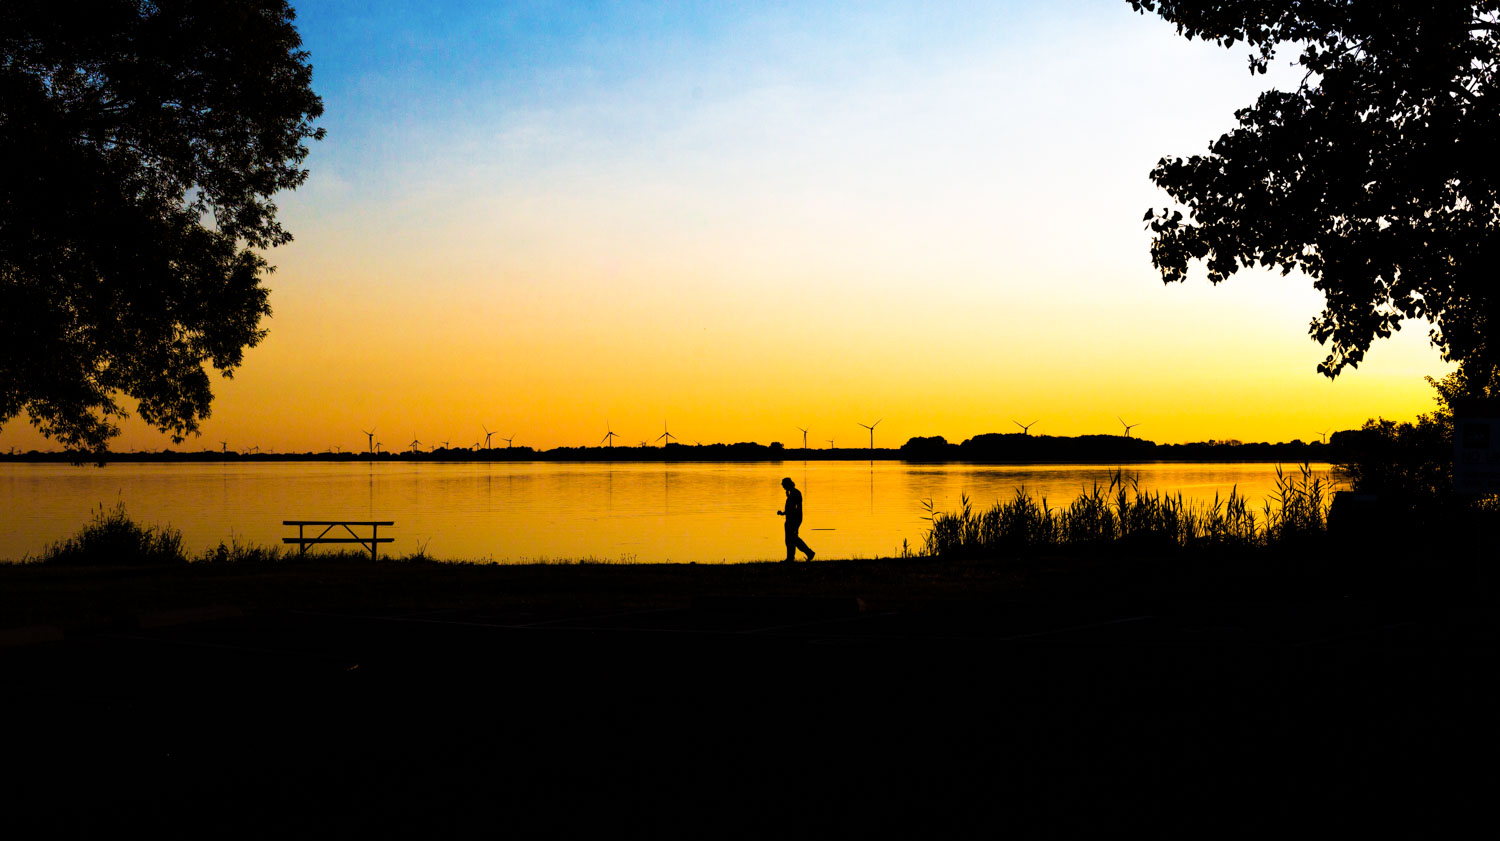 How to Use Low Graphic Style as a Compositional Tool - silhouette at dusk